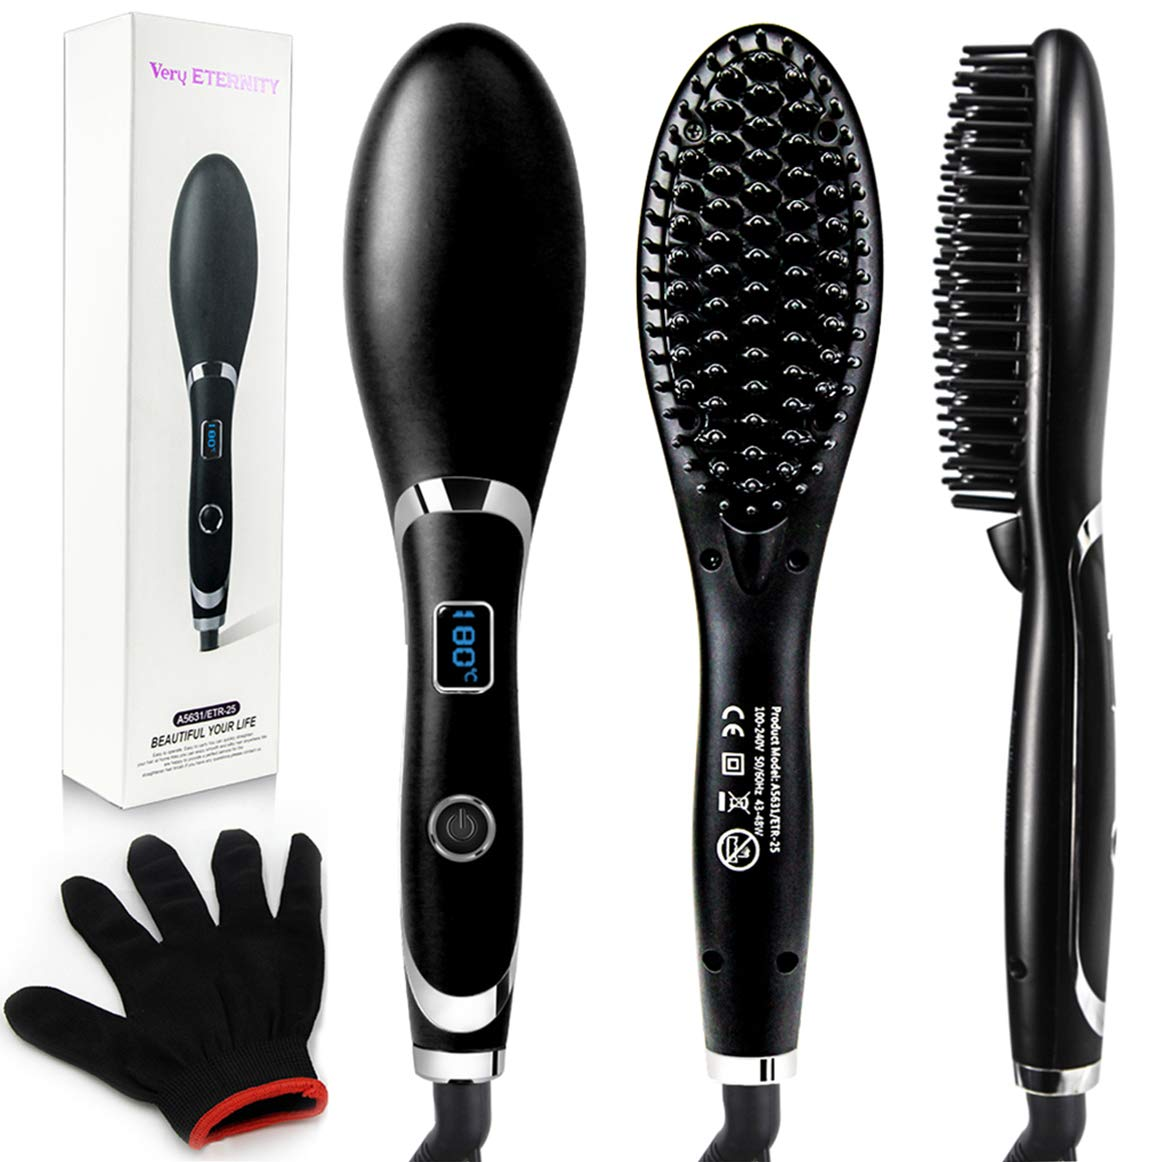 Hair Straightener Brush for Women by Veru ETERNITY, Fast Ionic Straightening Brush with Auto Temperature Lock & Auto-Off Function, Five-speed Adjustment Heating Temperature, Black by Veru ETERNITY